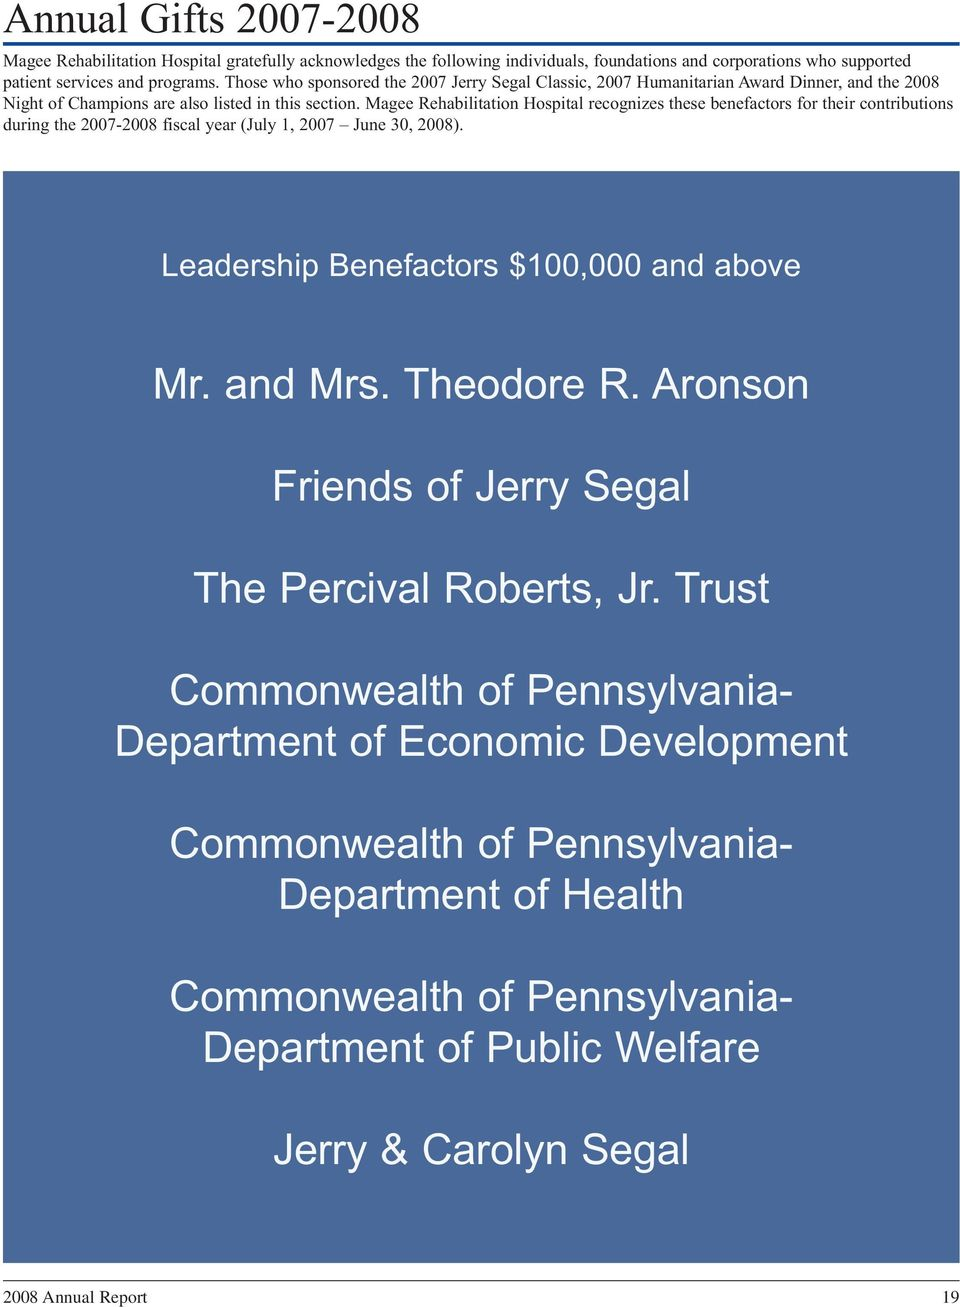 Magee Rehabilitation Hospital recognizes these benefactors for their contributions during the 2007-2008 fiscal year (July 1, 2007 June 30, 2008). Leadership Benefactors $100,000 and above Mr. and Mrs.